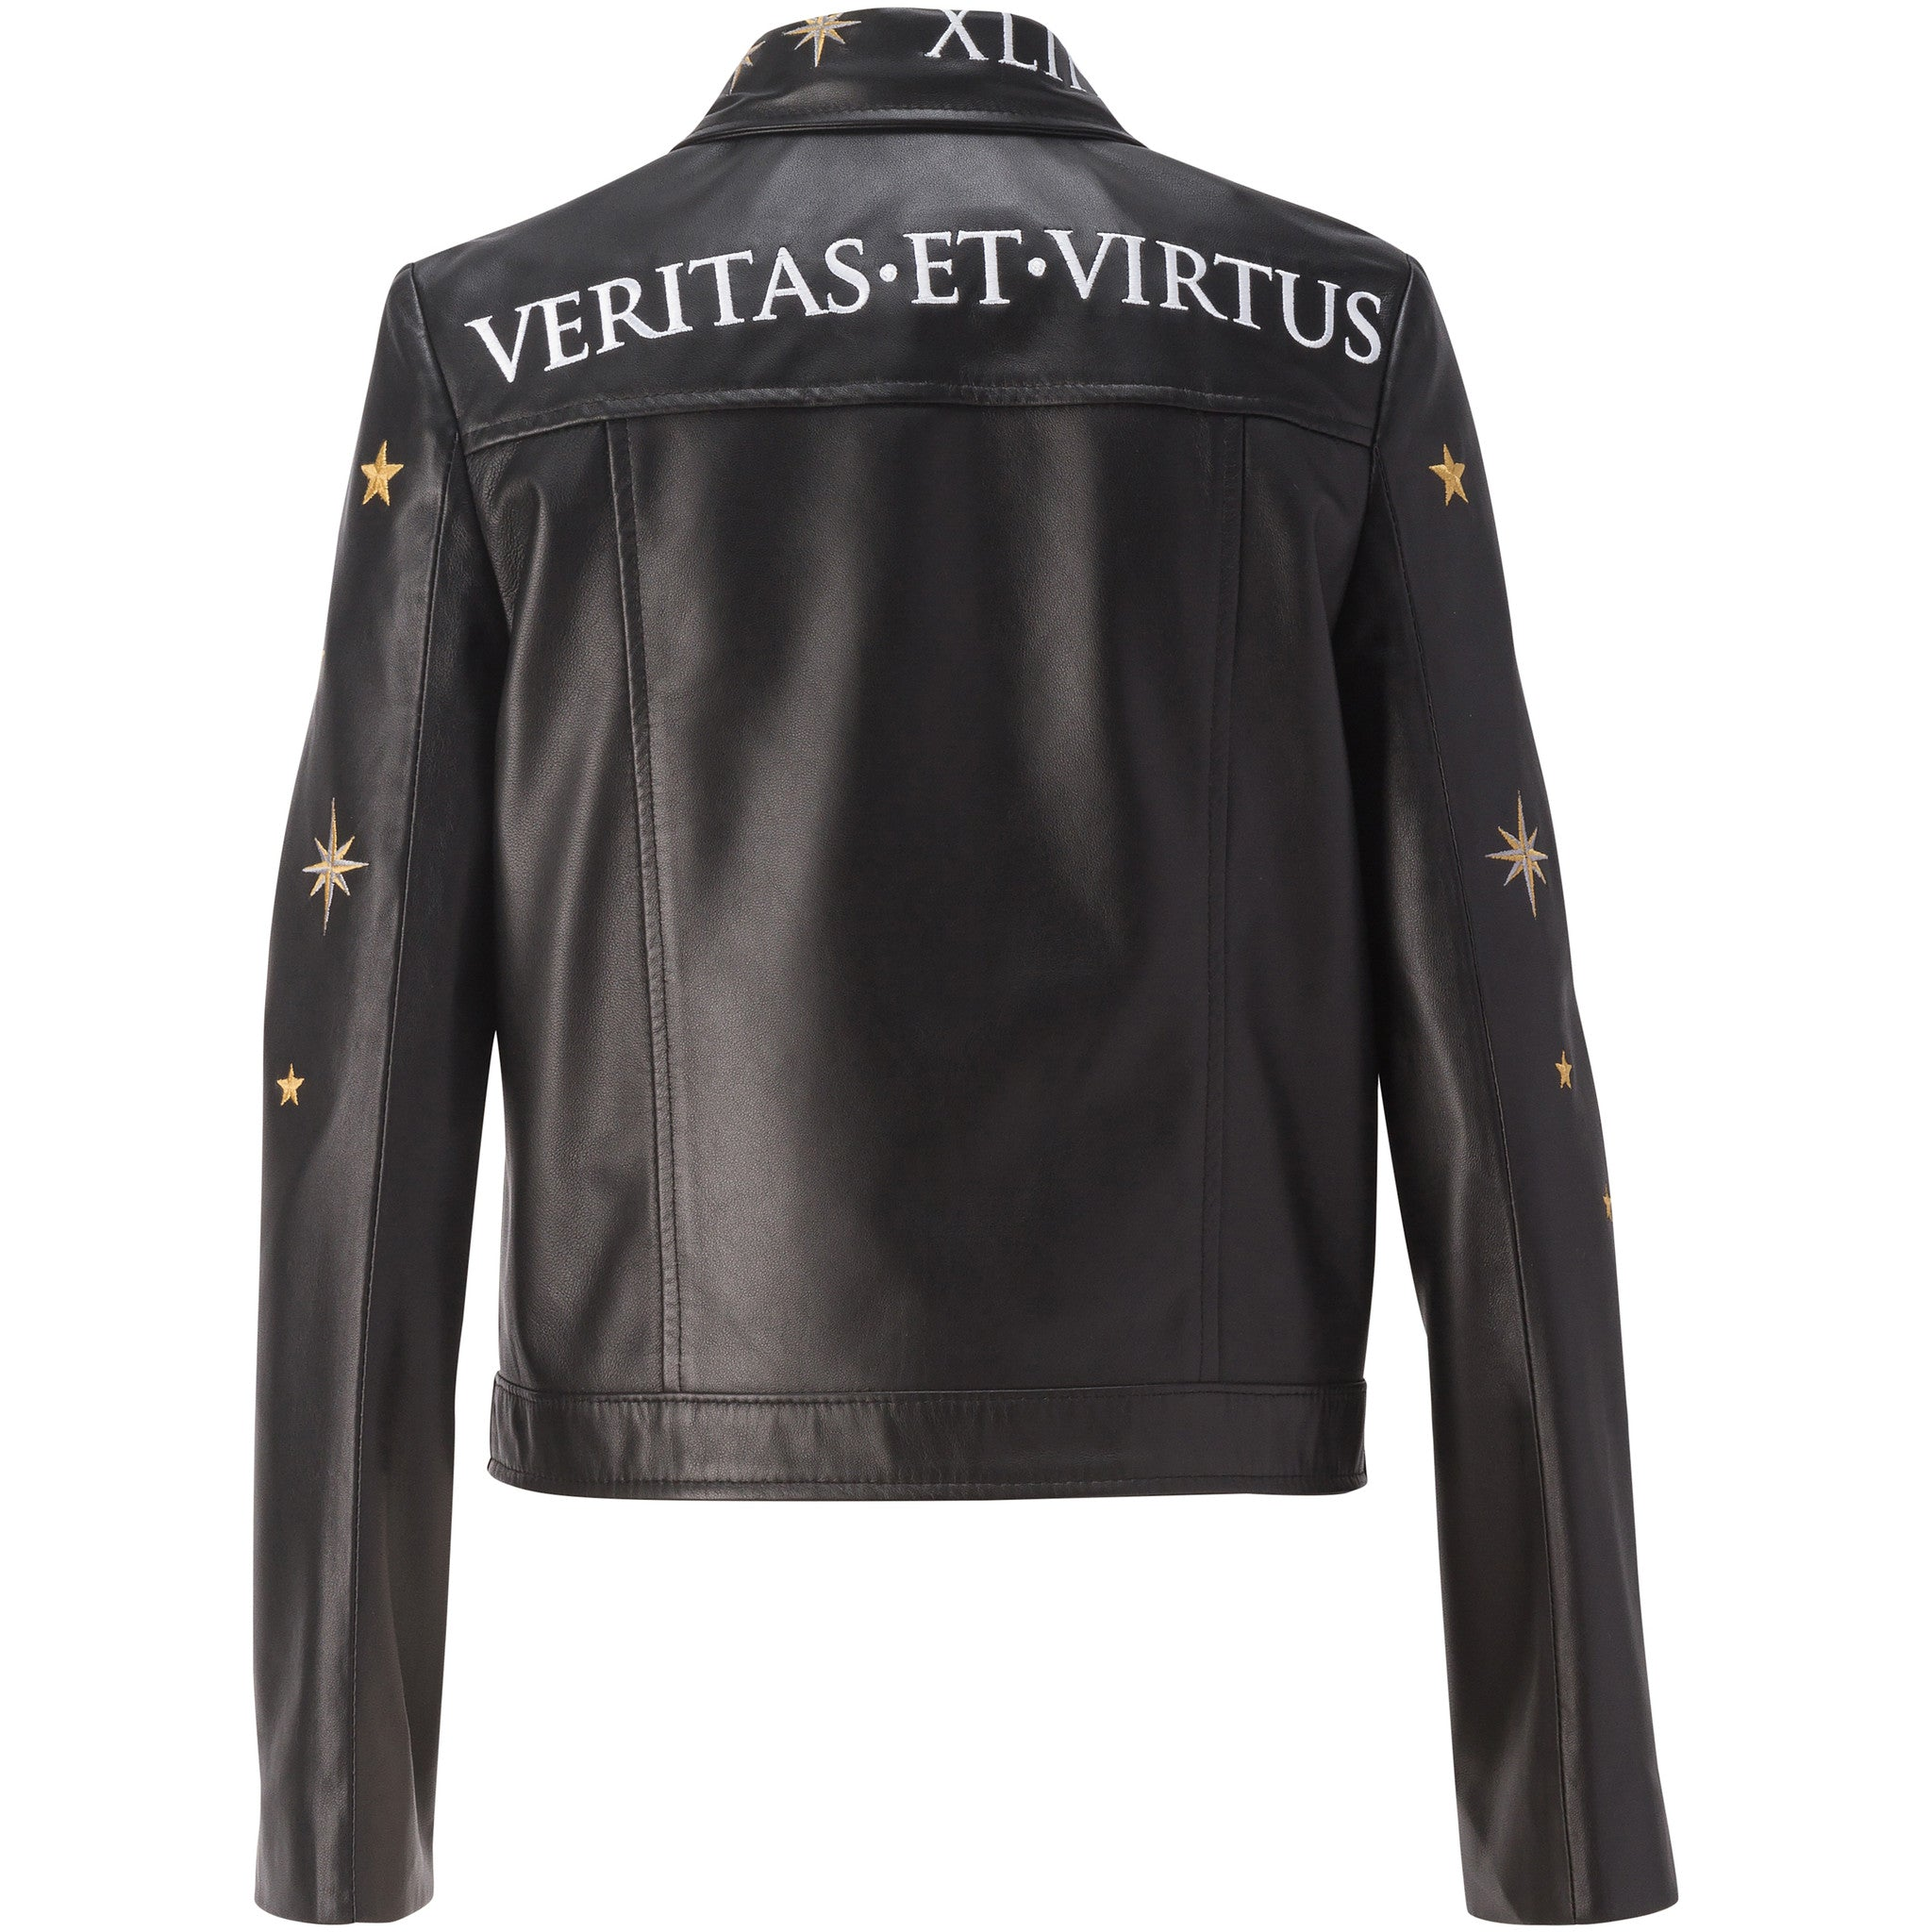 'VERITAS ET VIRTUS' Embroidered Leather Jacket